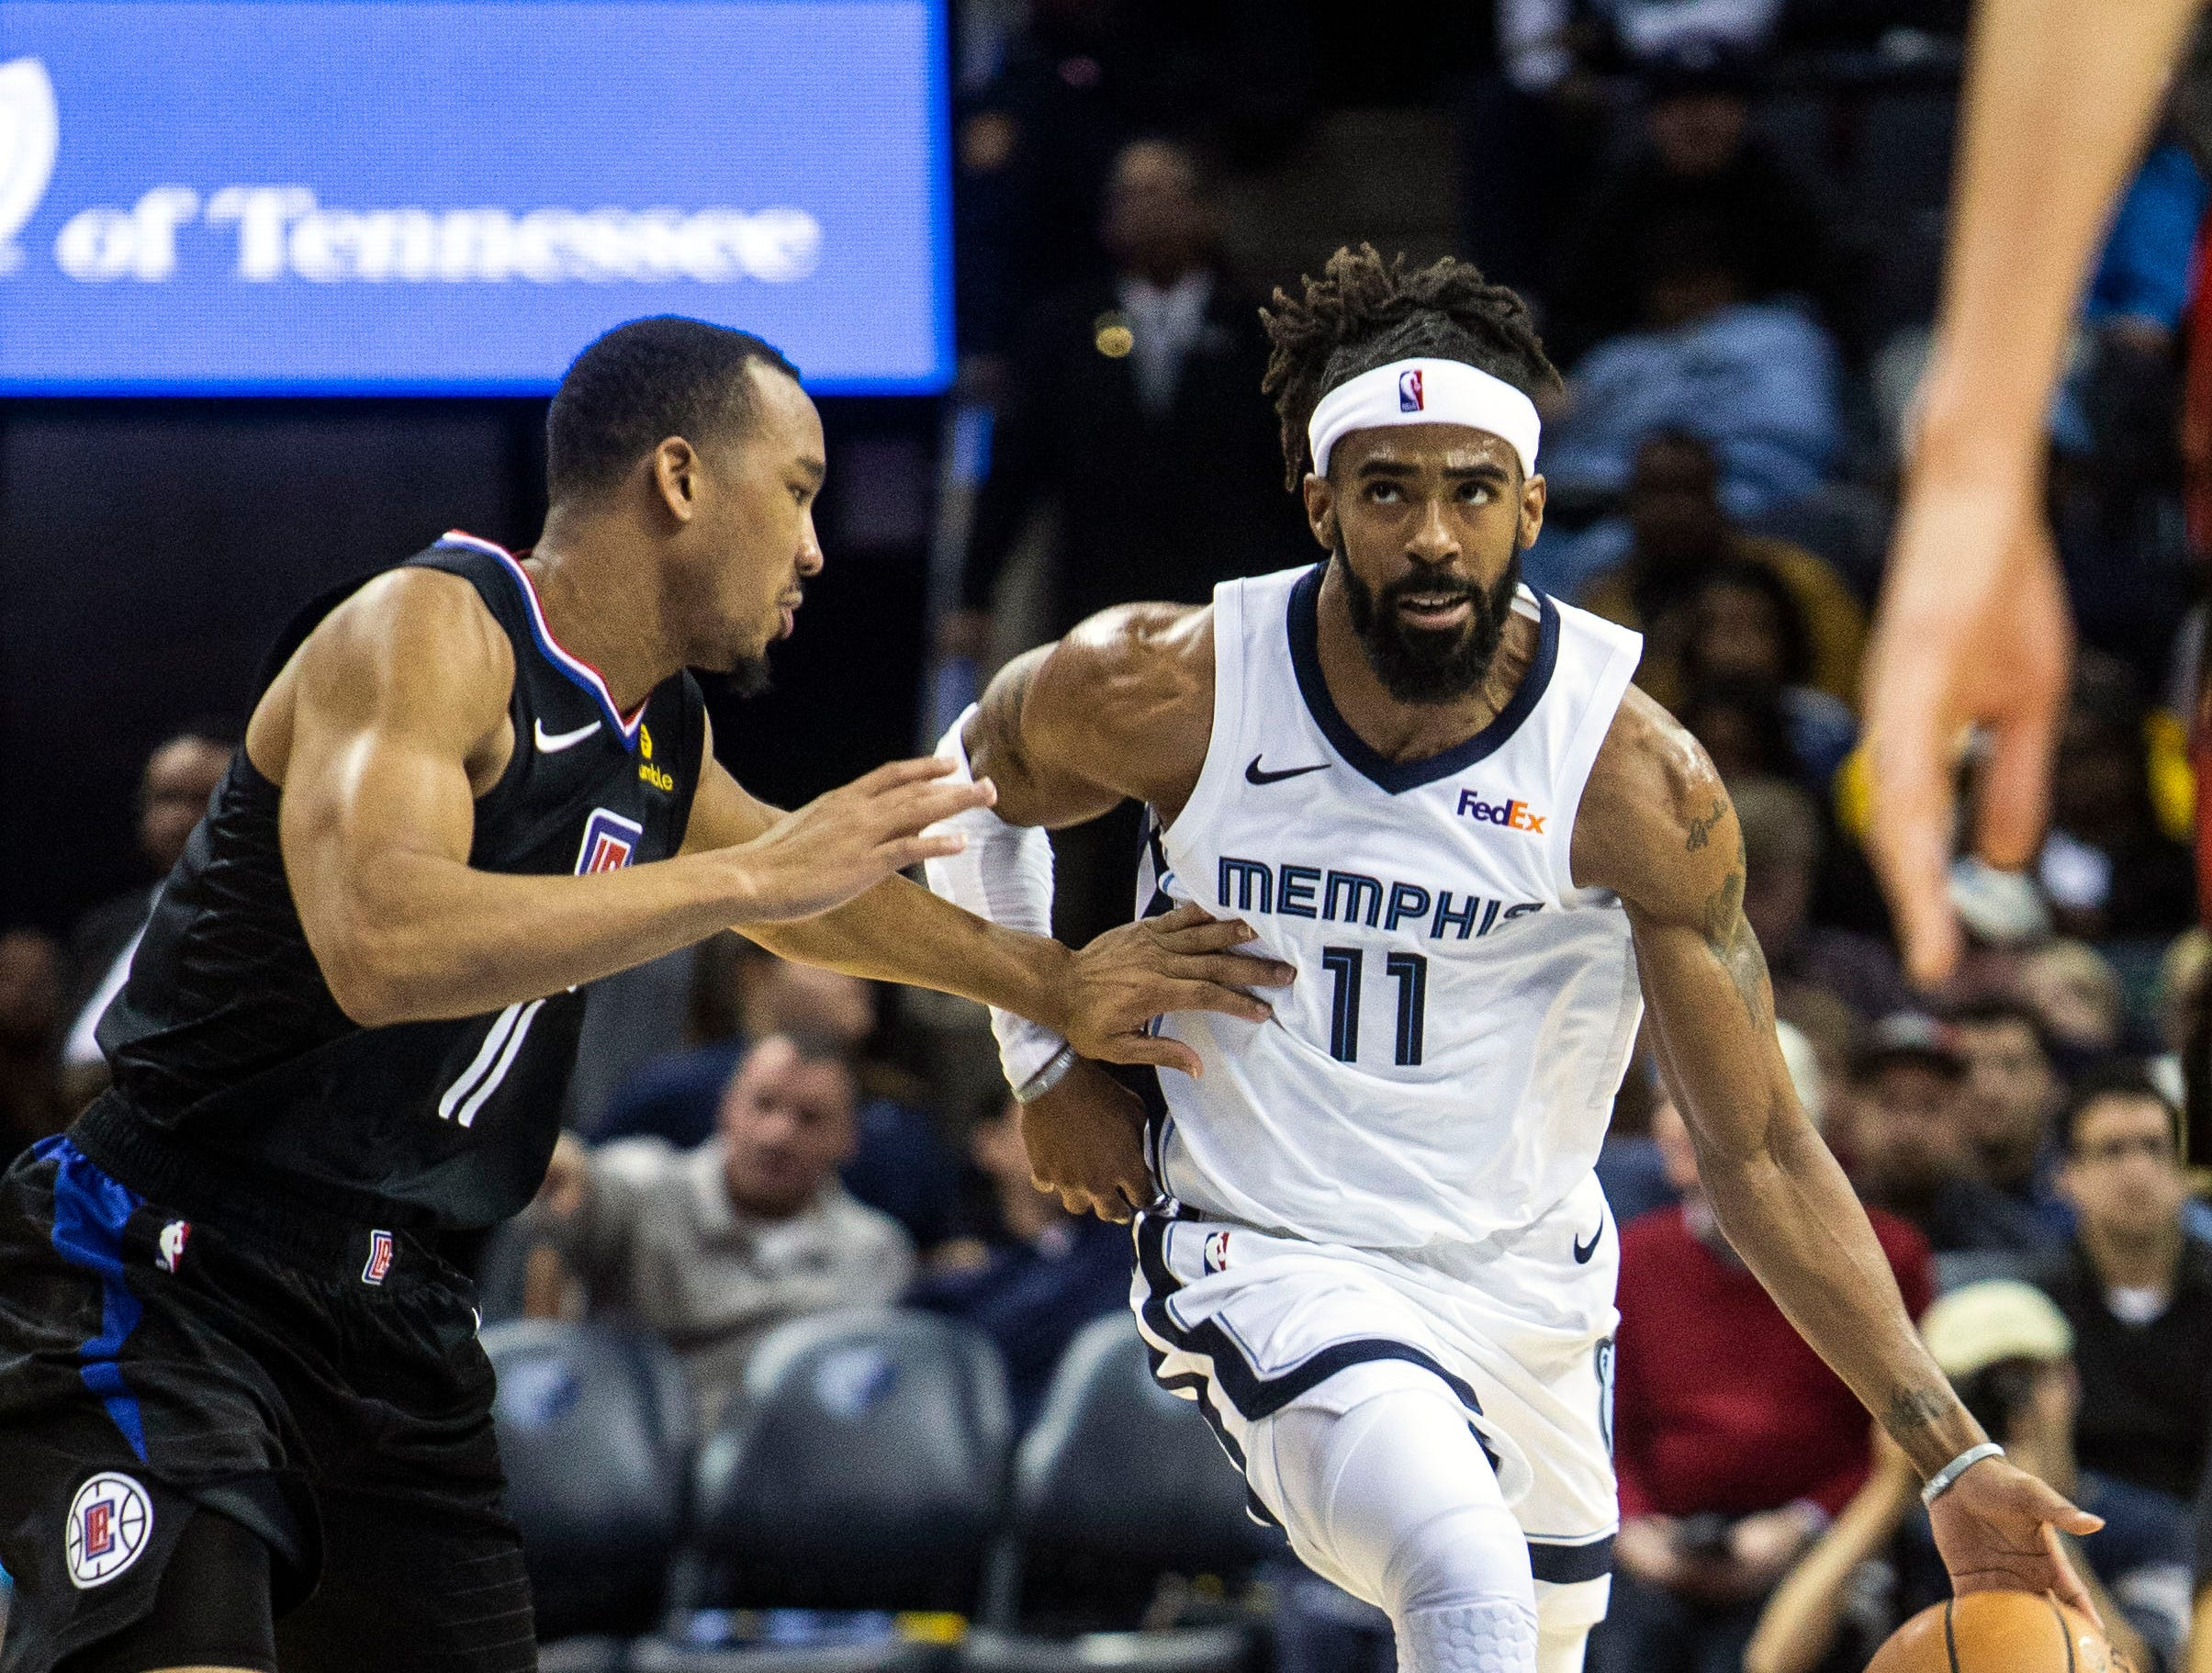 Memphis Grizzles guard Mike Conley (11) drives to the hoop during a NBA basketball game between the Memphis Grizzlies and the  Los Angeles Clippers in the Fedex Forum, Wednesday, Dec. 5, 2018.